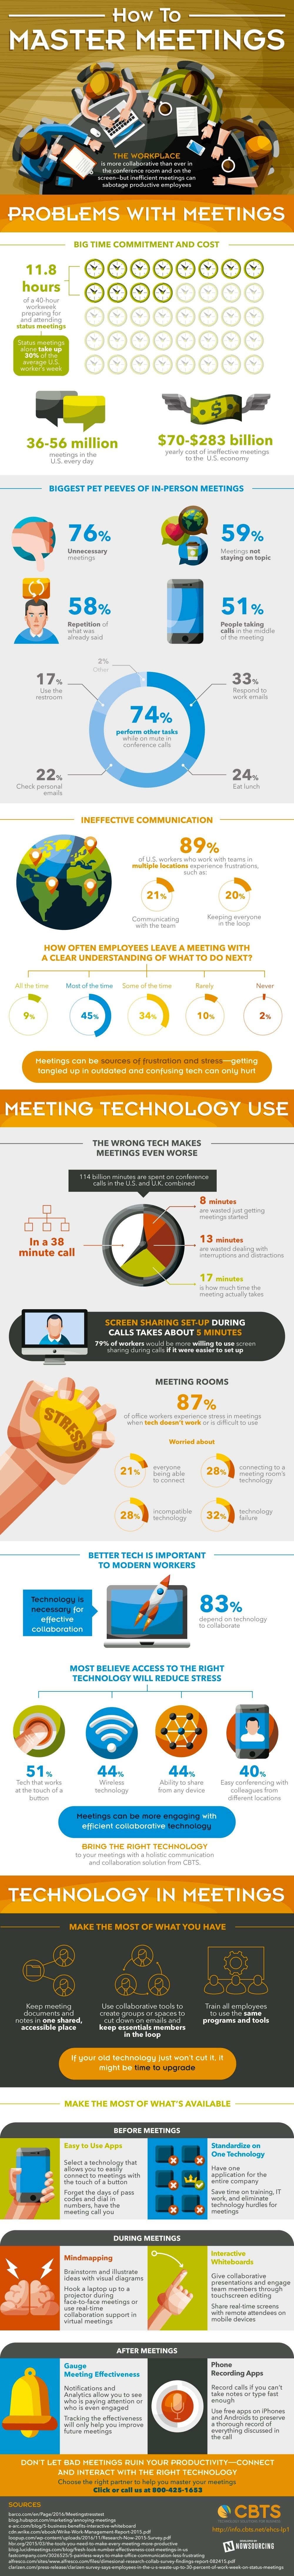 How to Master Meetings - #Infographic